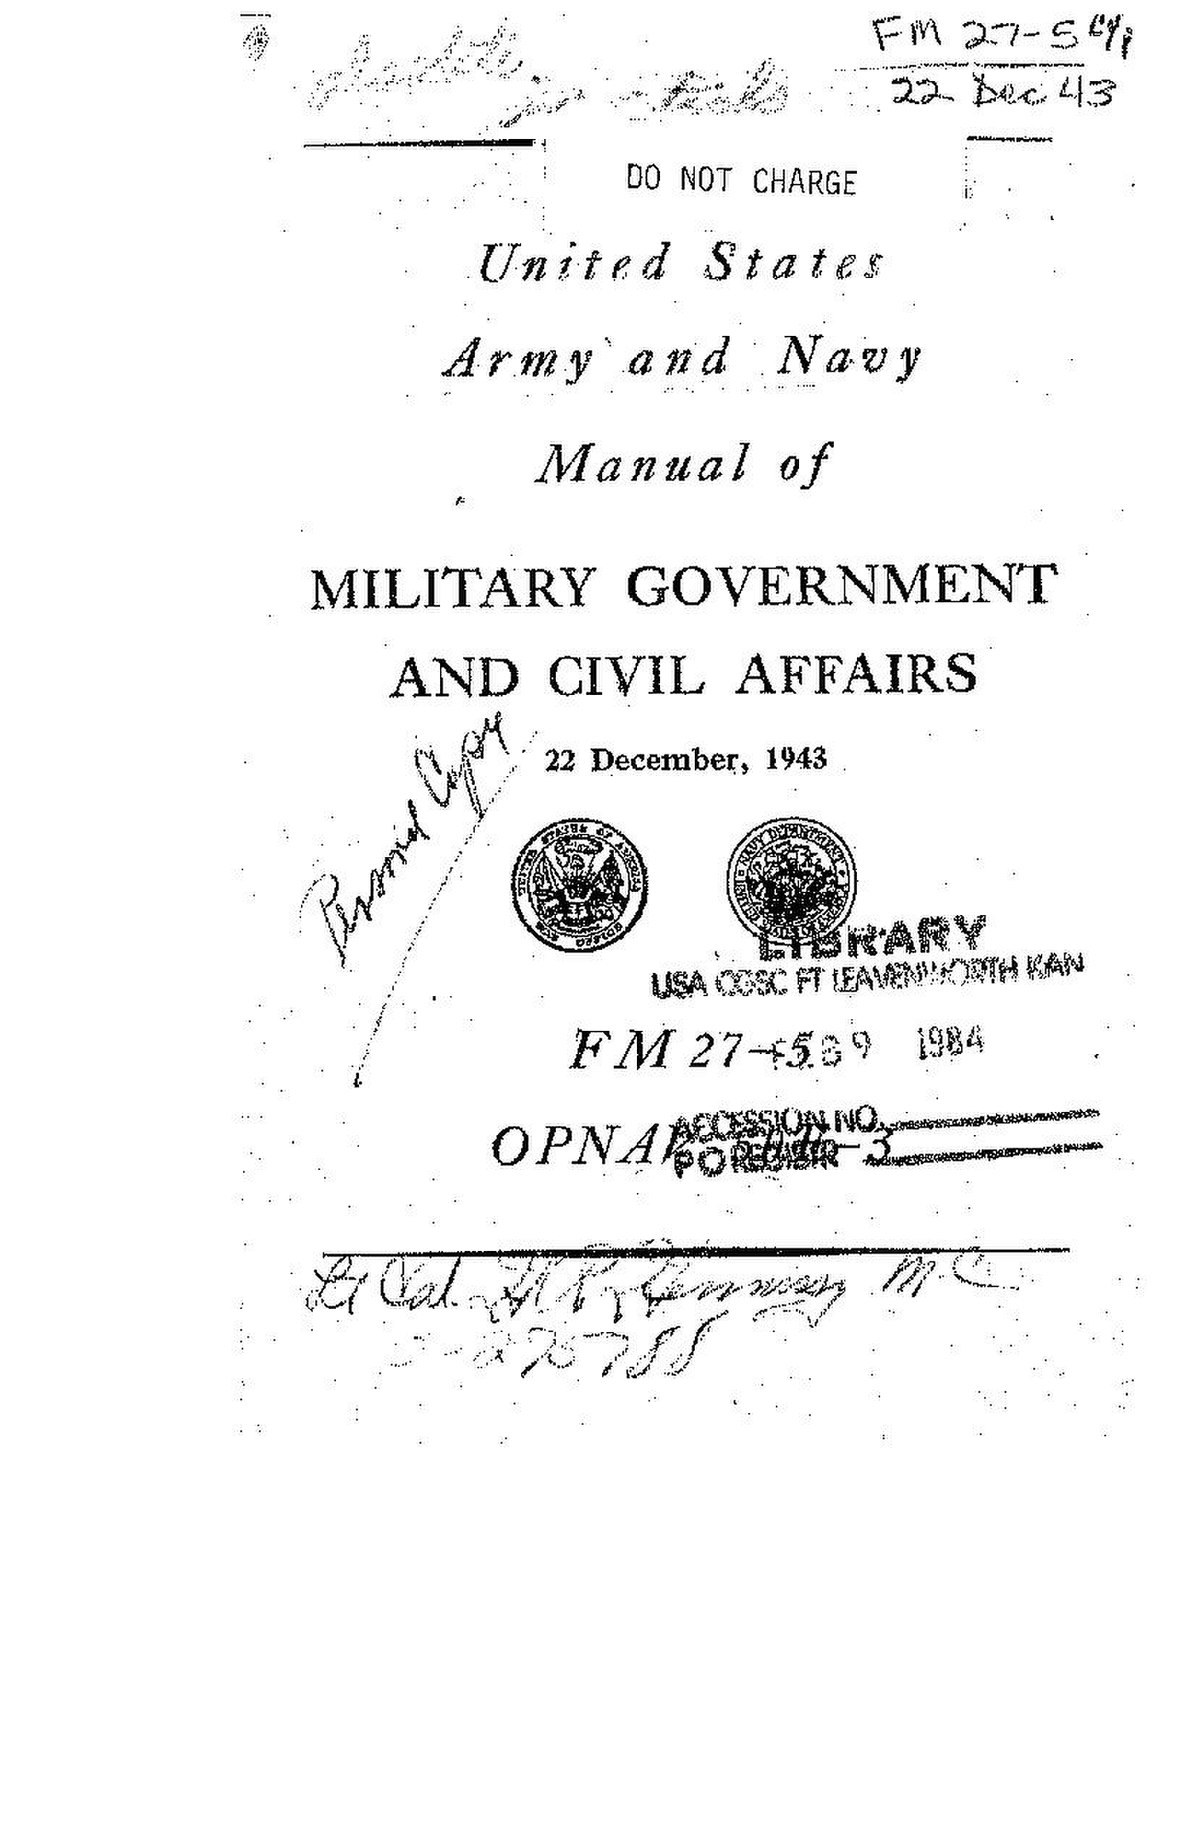 File:FM 27-5 - OPNAV 50E-3 United States Army and Navy Manual of ...